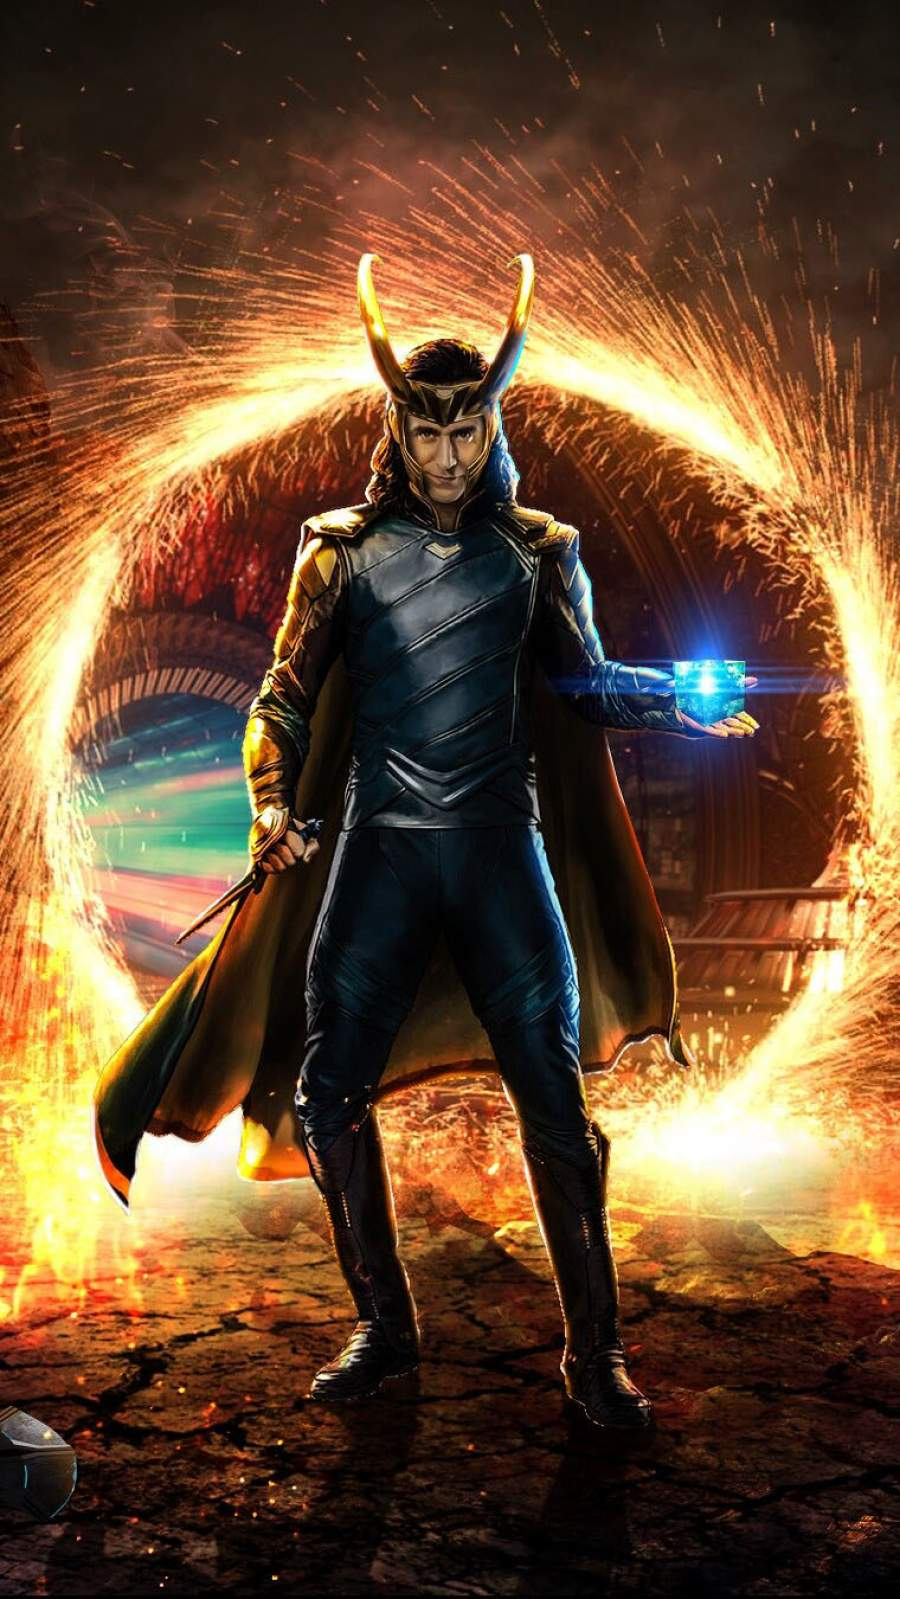 Loki is back iphone wallpaper iphone wallpapers - Loki phone wallpaper ...